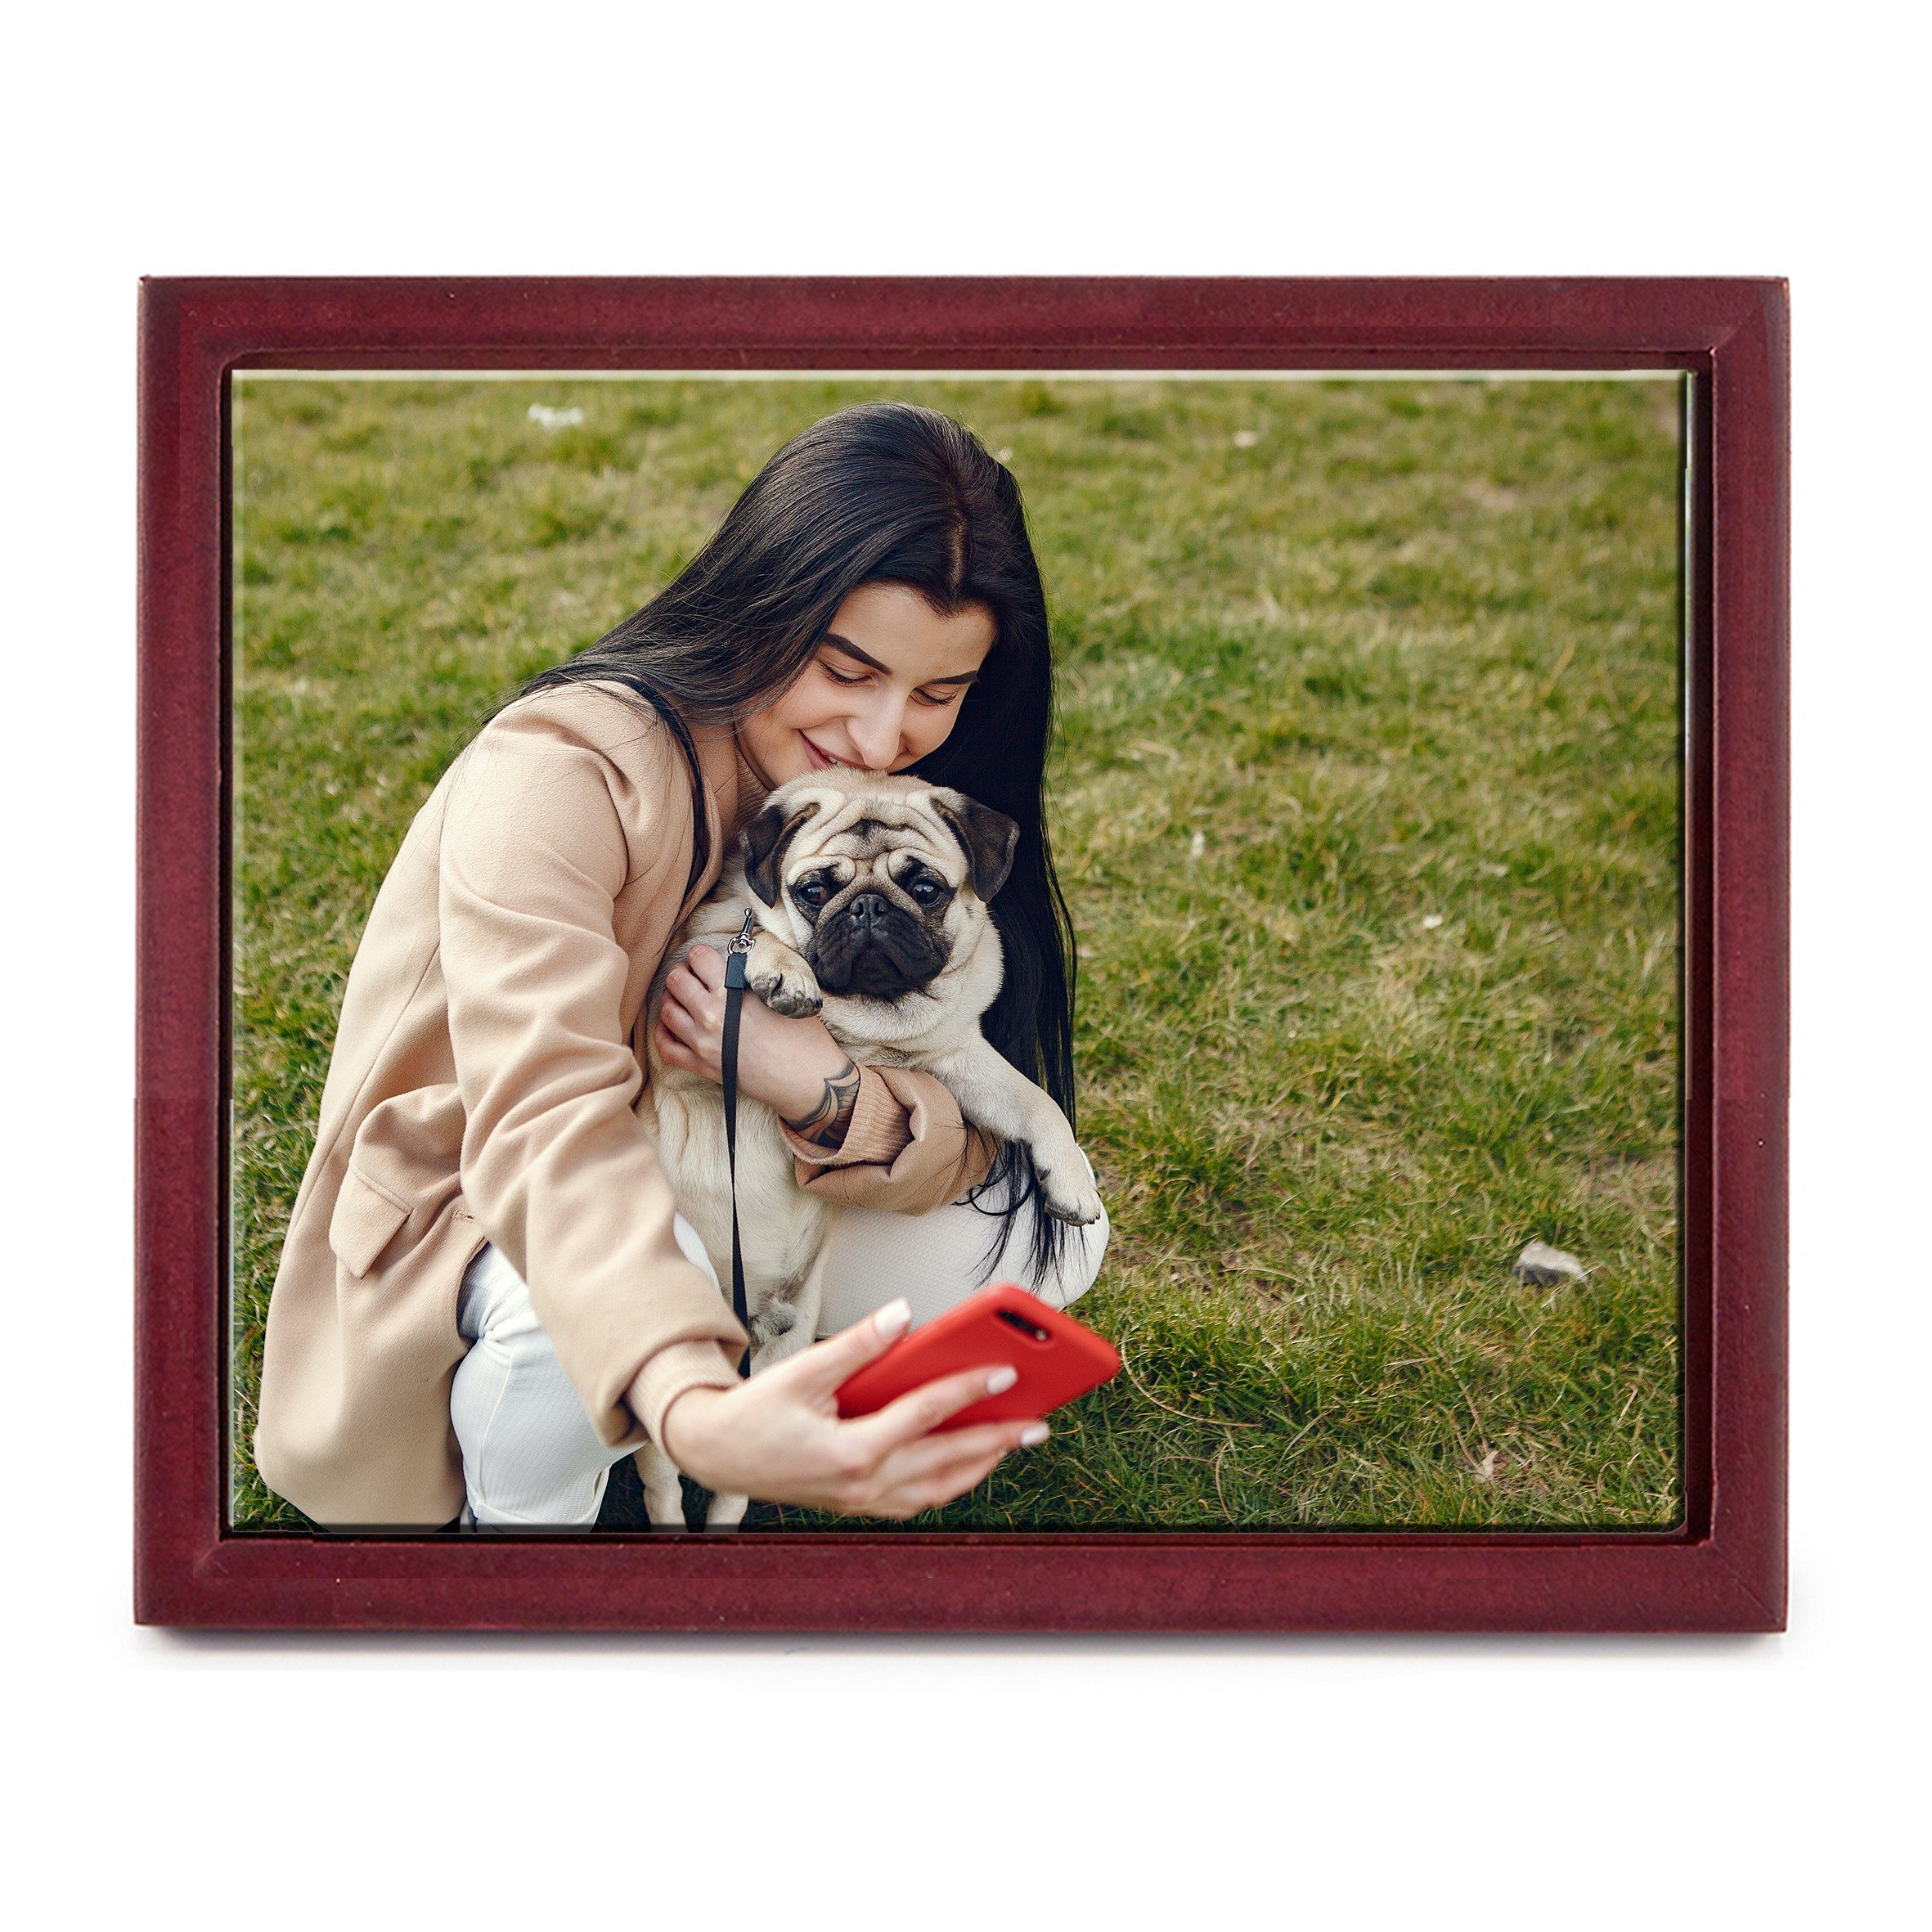 """10"""" x 8"""" Personalized Photo Printed Ceramic Tile (with Wooden Frame)"""